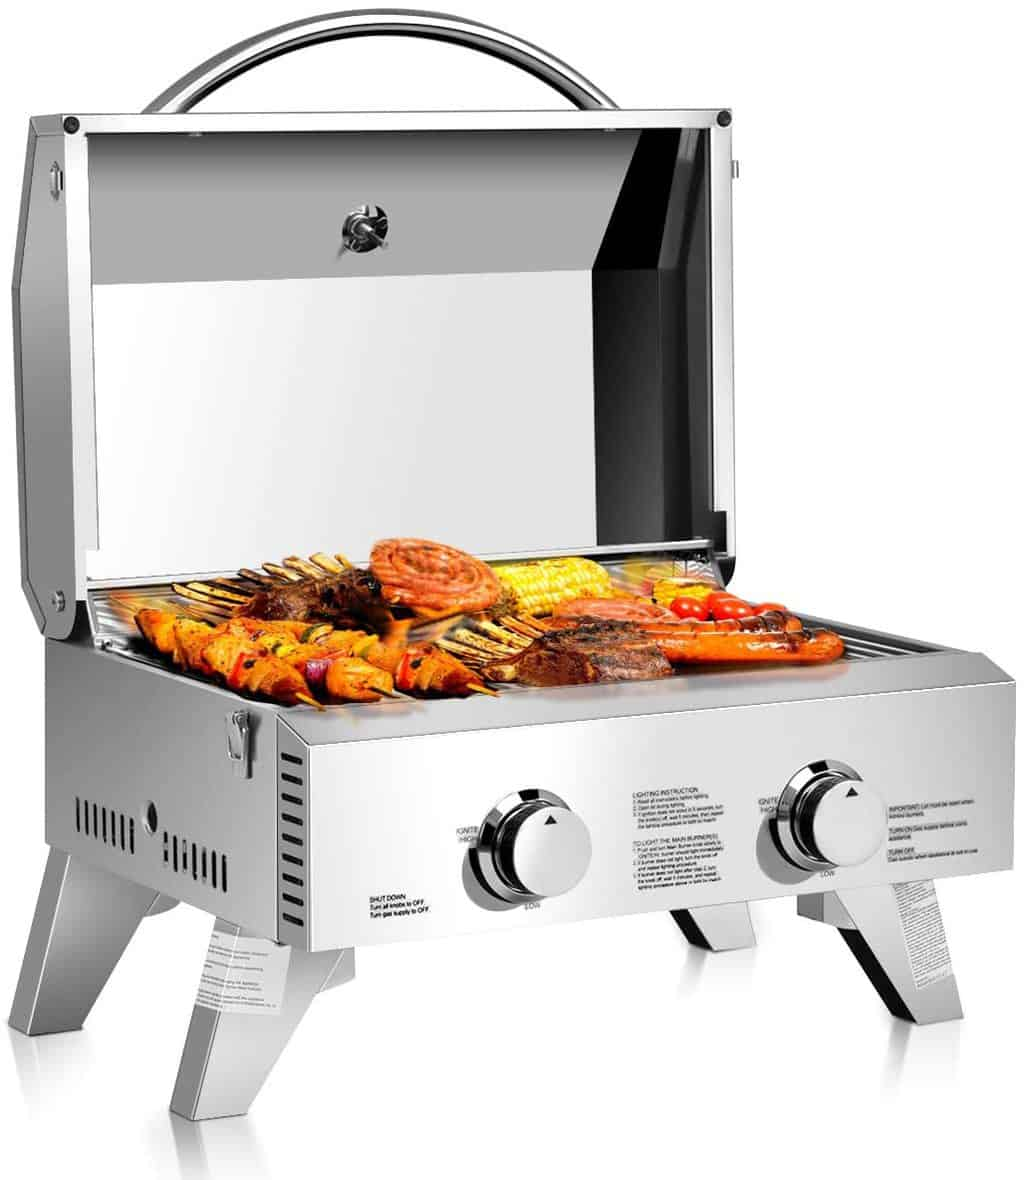 Giantex Propane Tabletop Grill